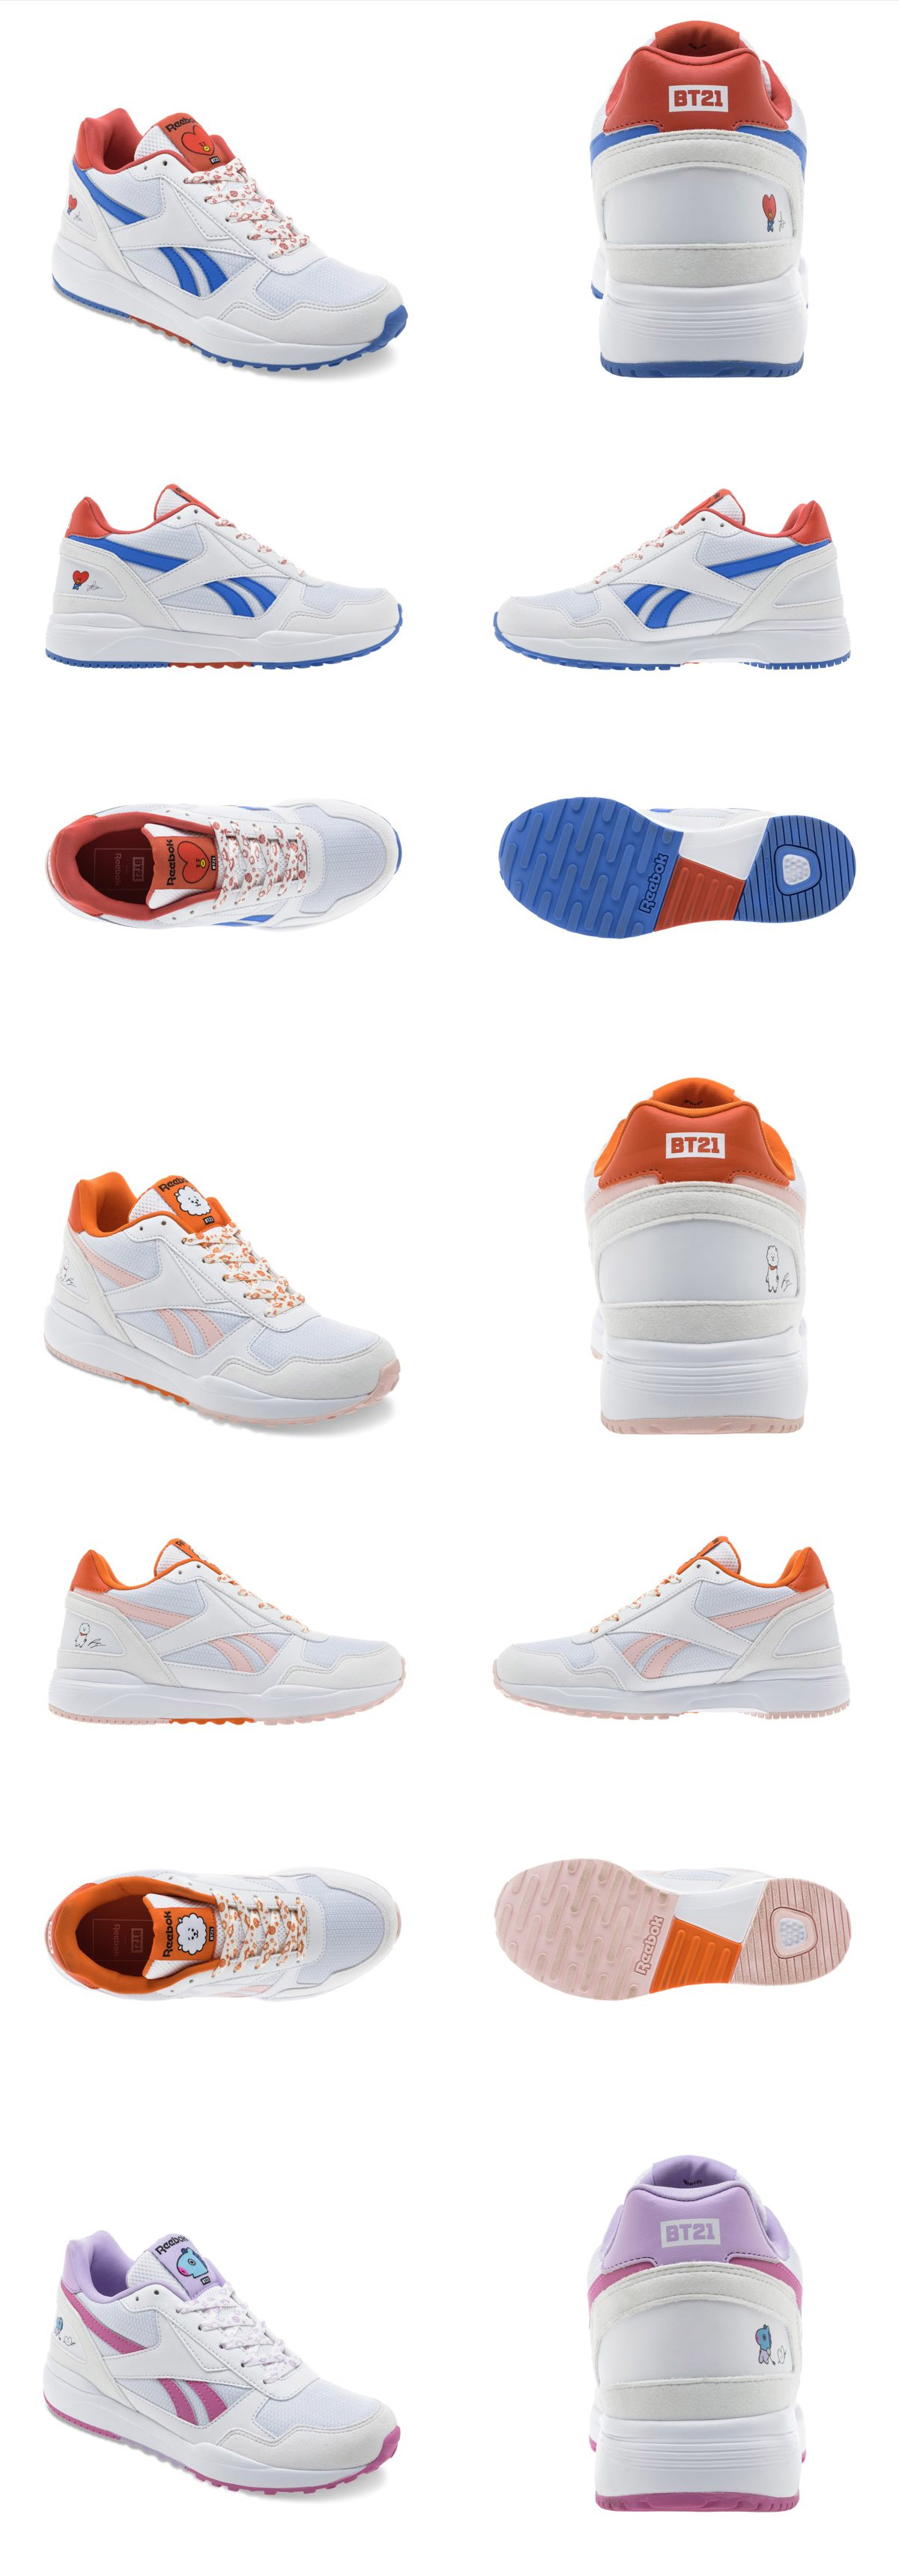 e246a92e322  BT21  Reebok Collaboration - Royal Bridge 2.0